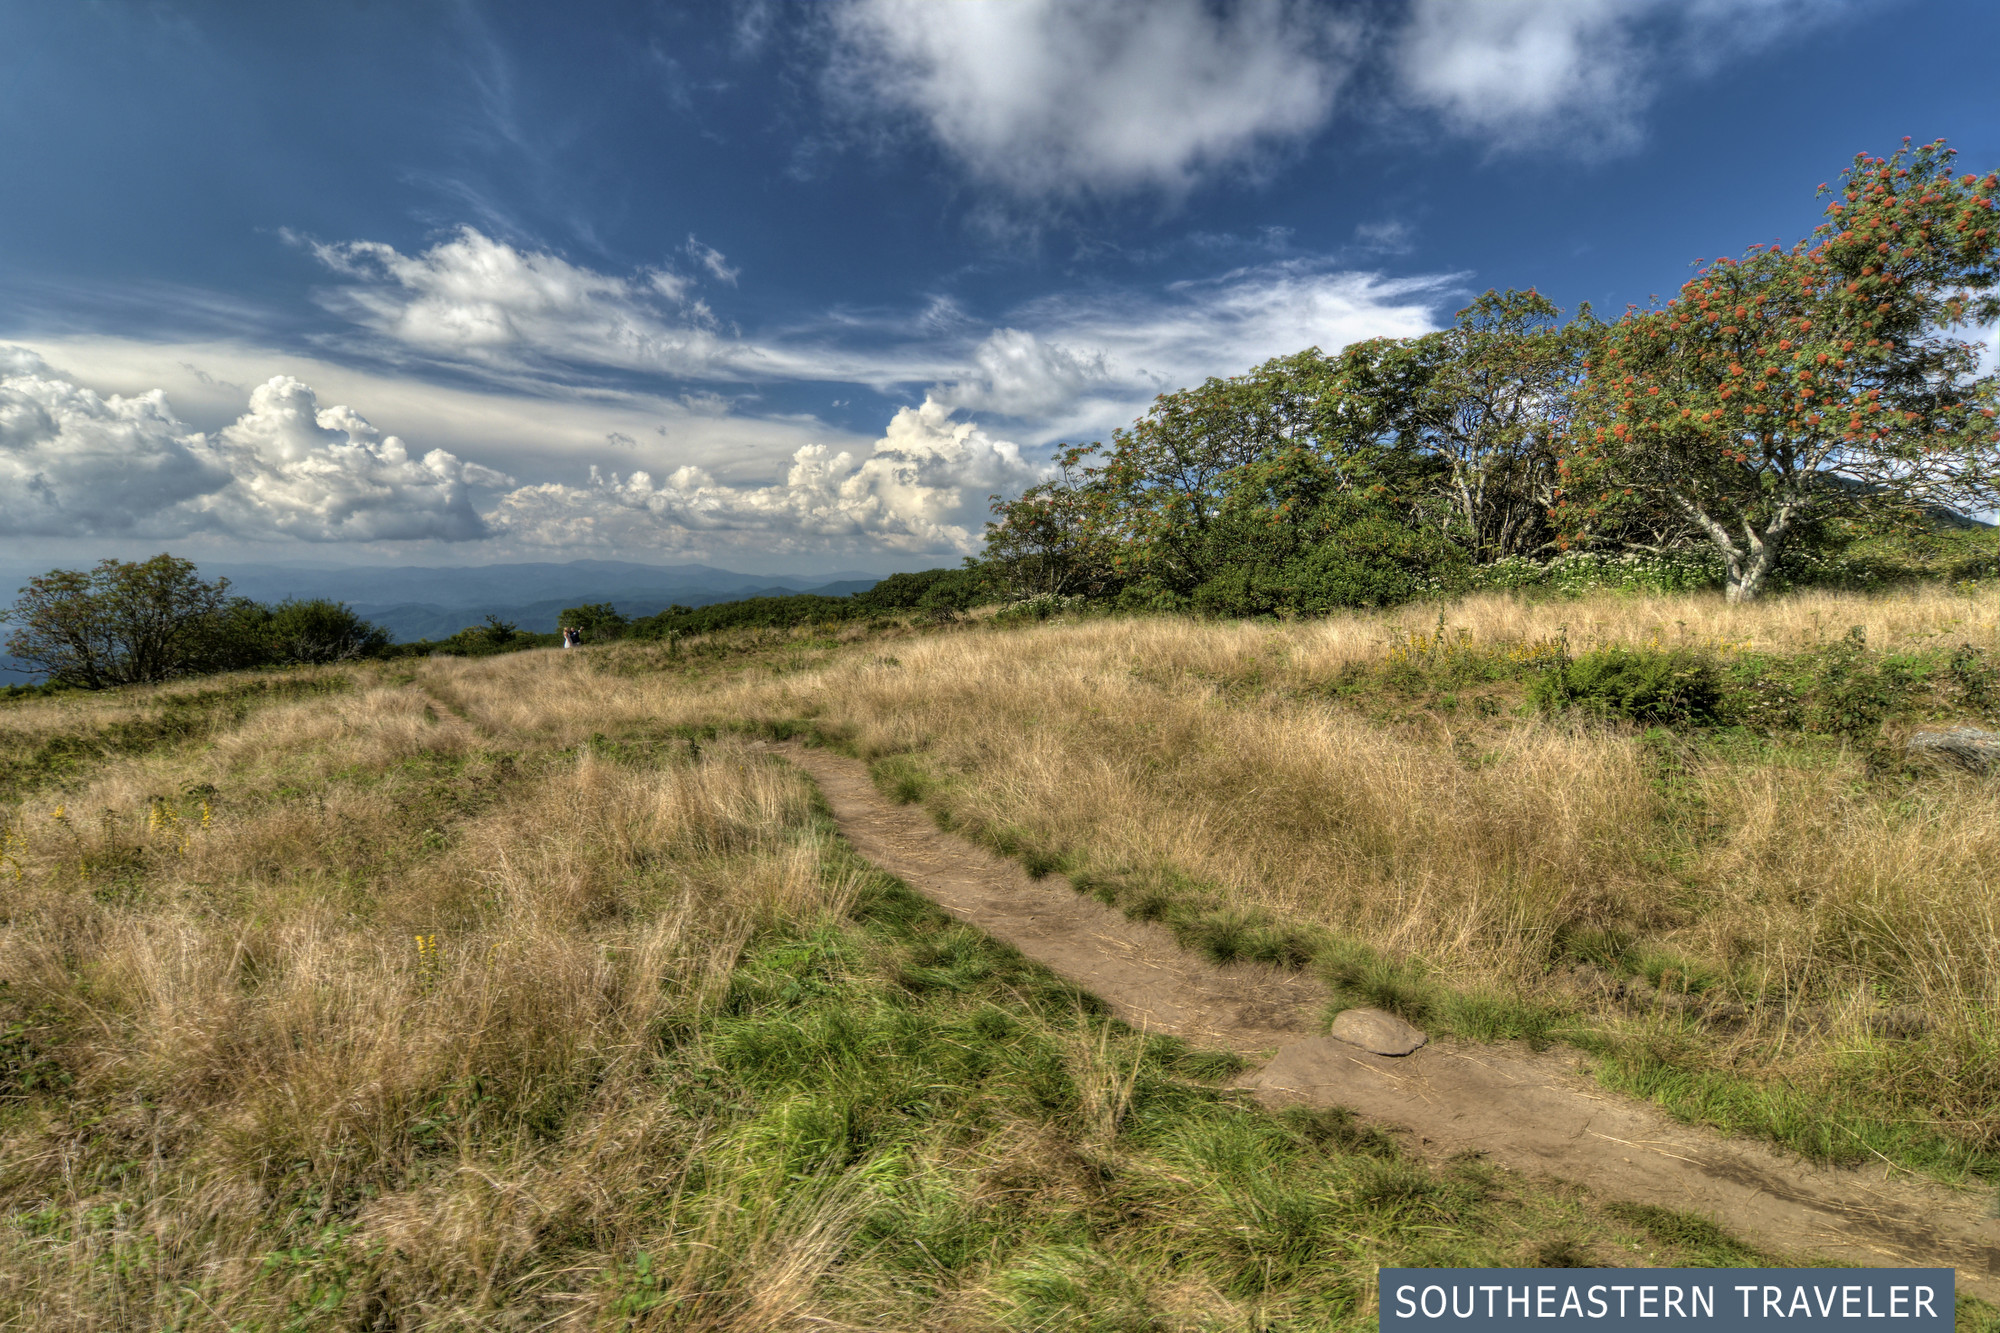 A dirt path in a field at Craggy Knob on the Blue Ridge Parkway near Asheville, North Carolina